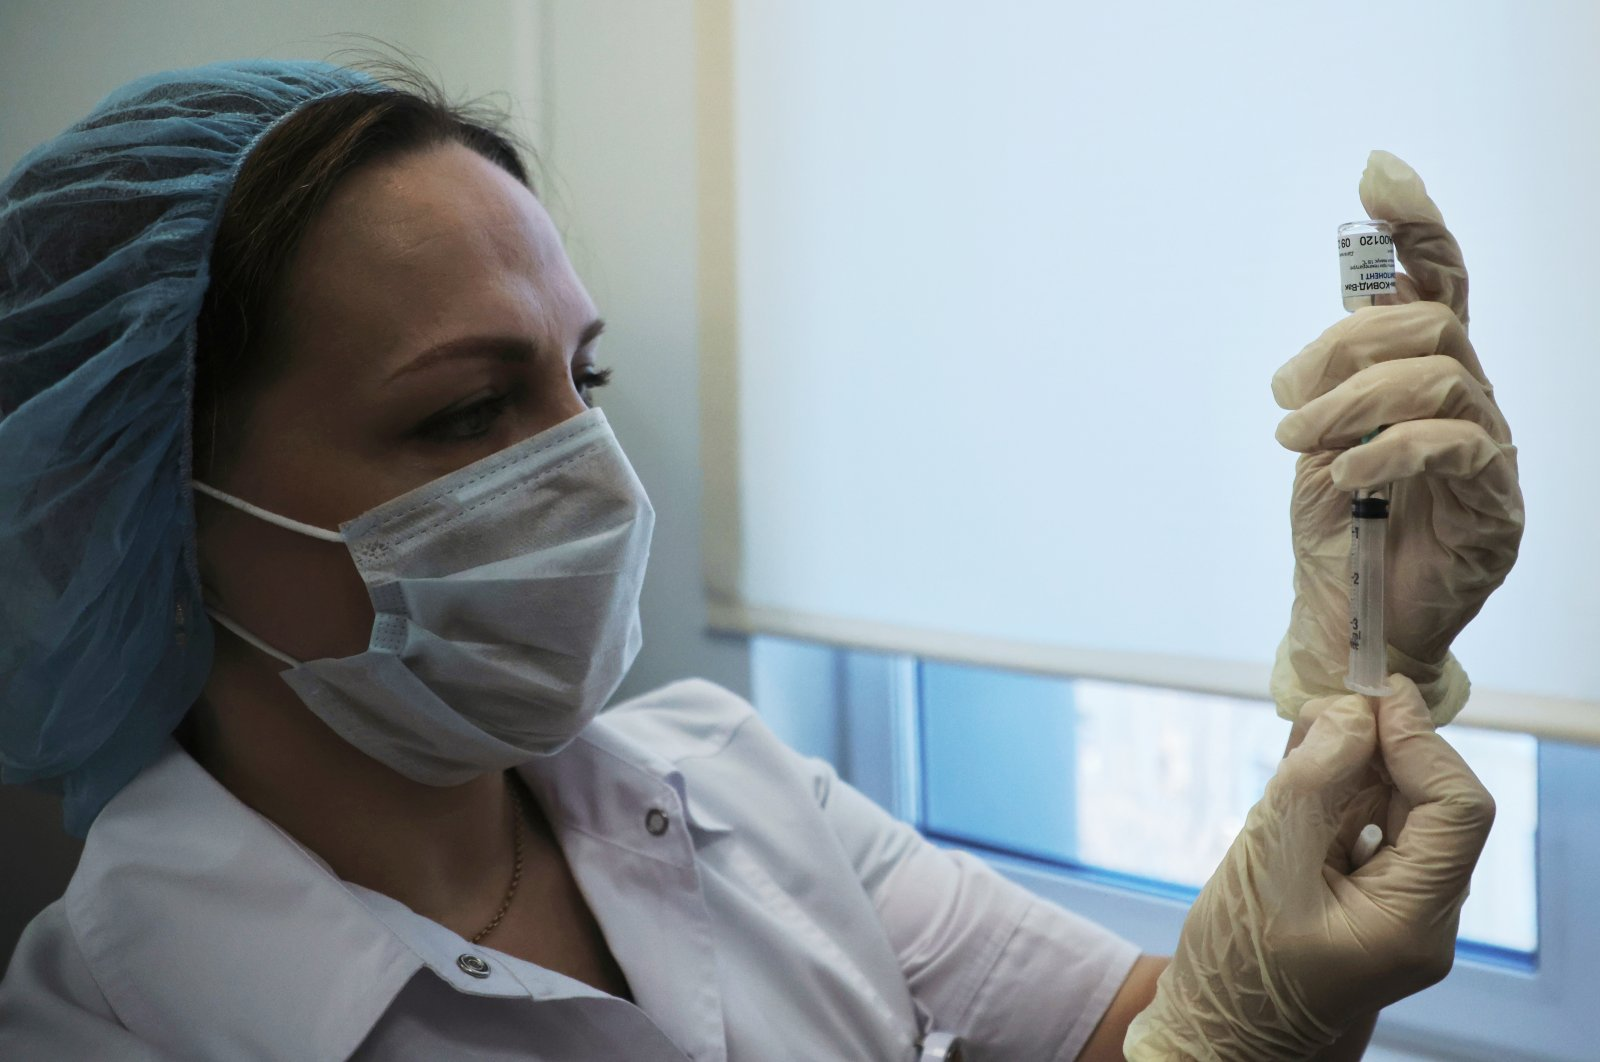 A medical worker fills a syringe with the Sputnik-V vaccine in Moscow, Russia, Dec. 5, 2020. (Reuters Photo)